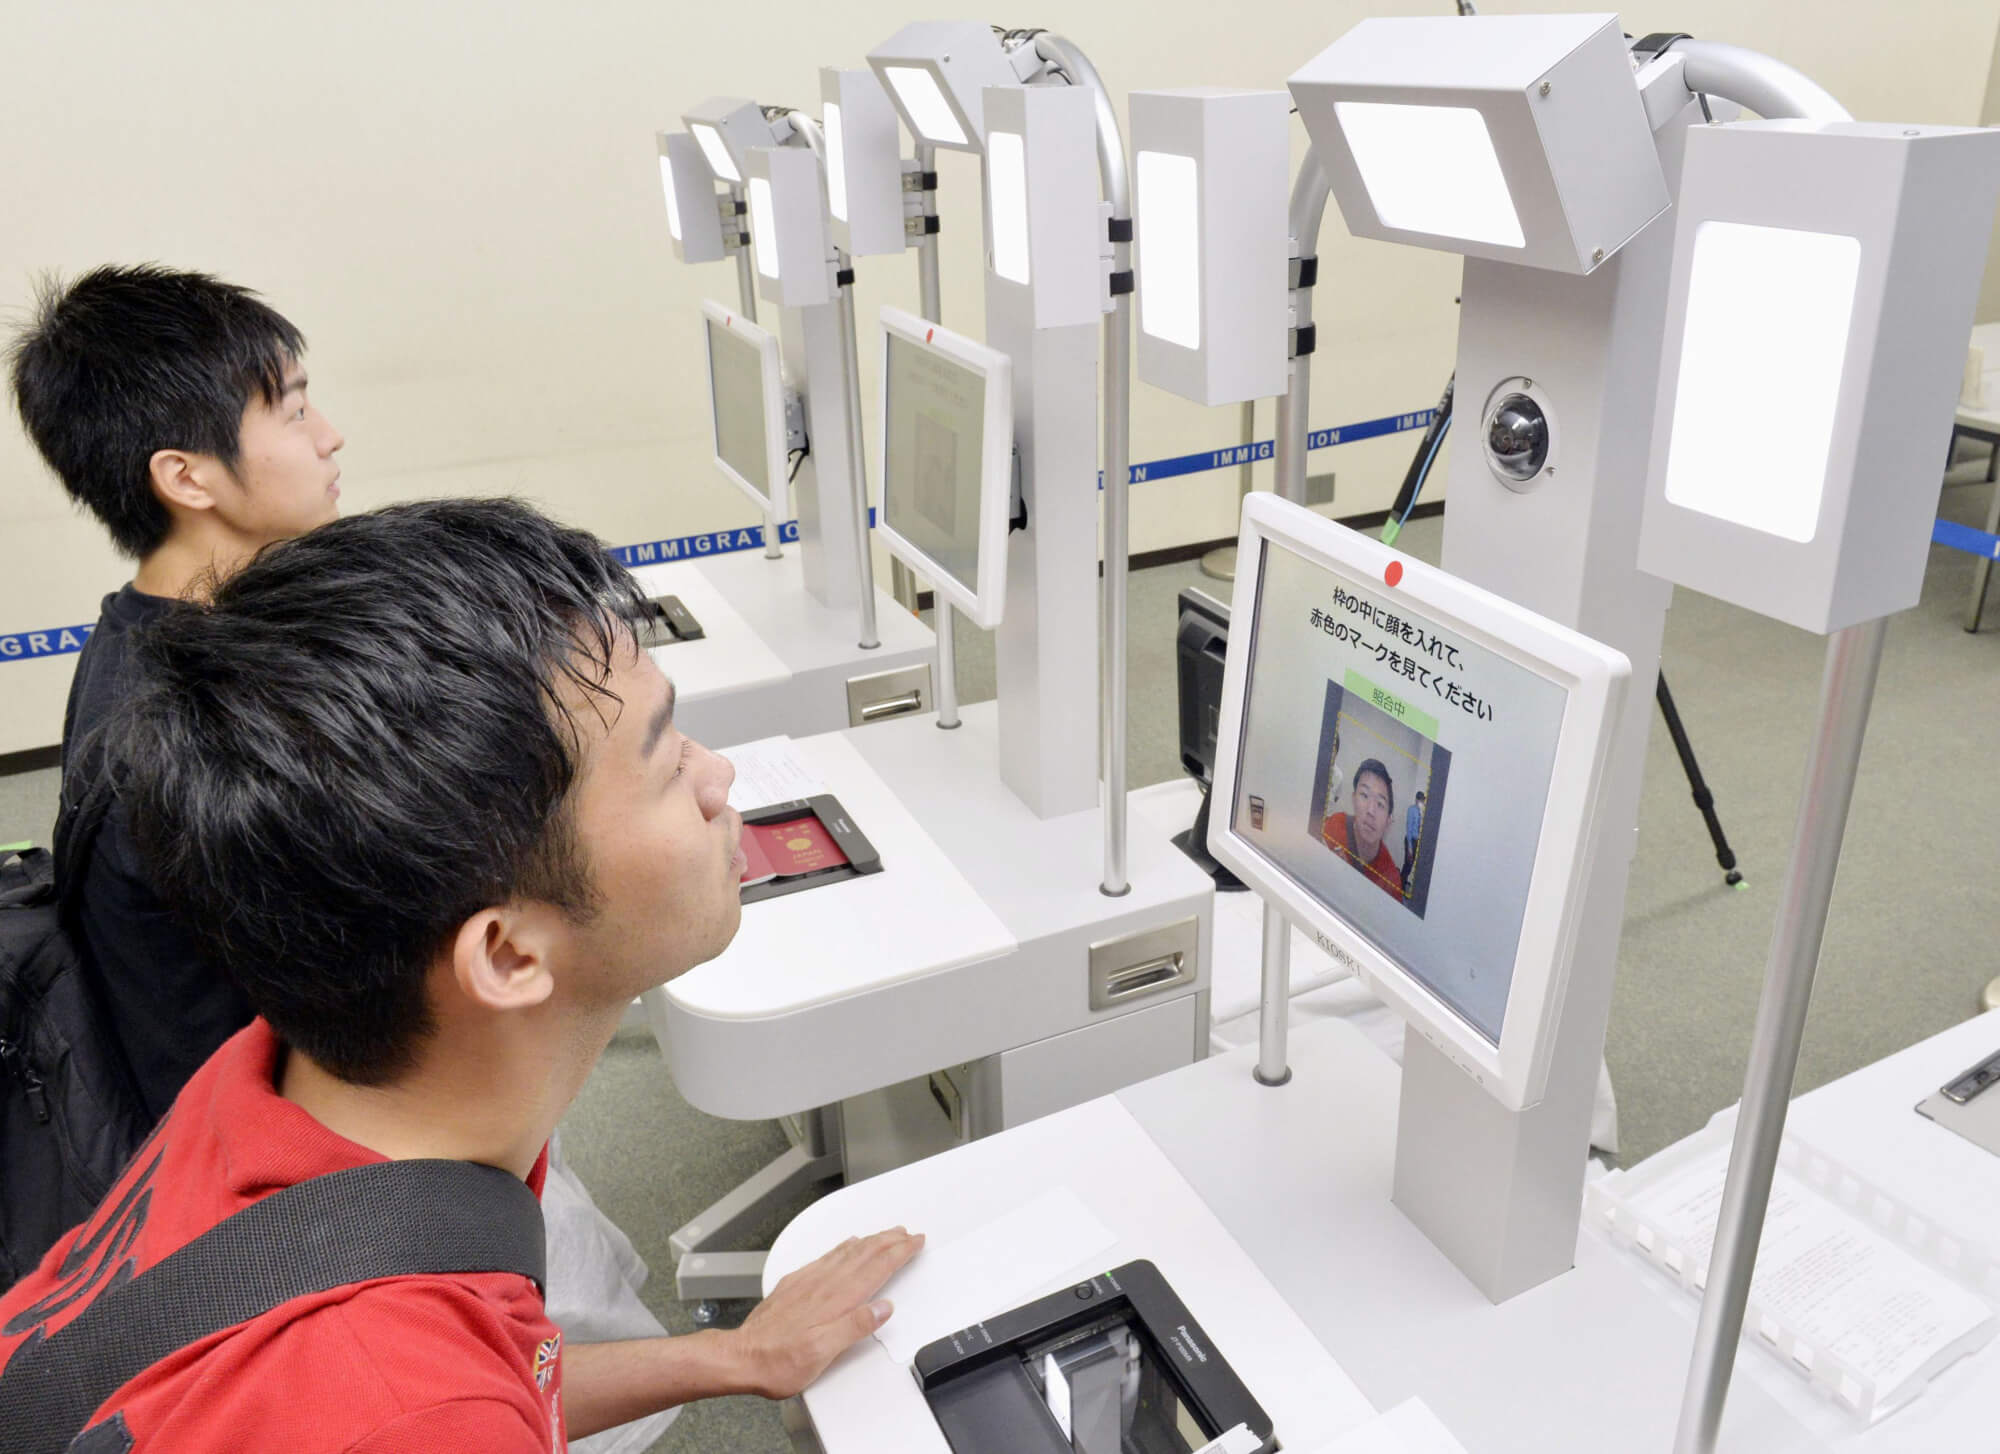 US Customs to speed up facial recognition adoption at